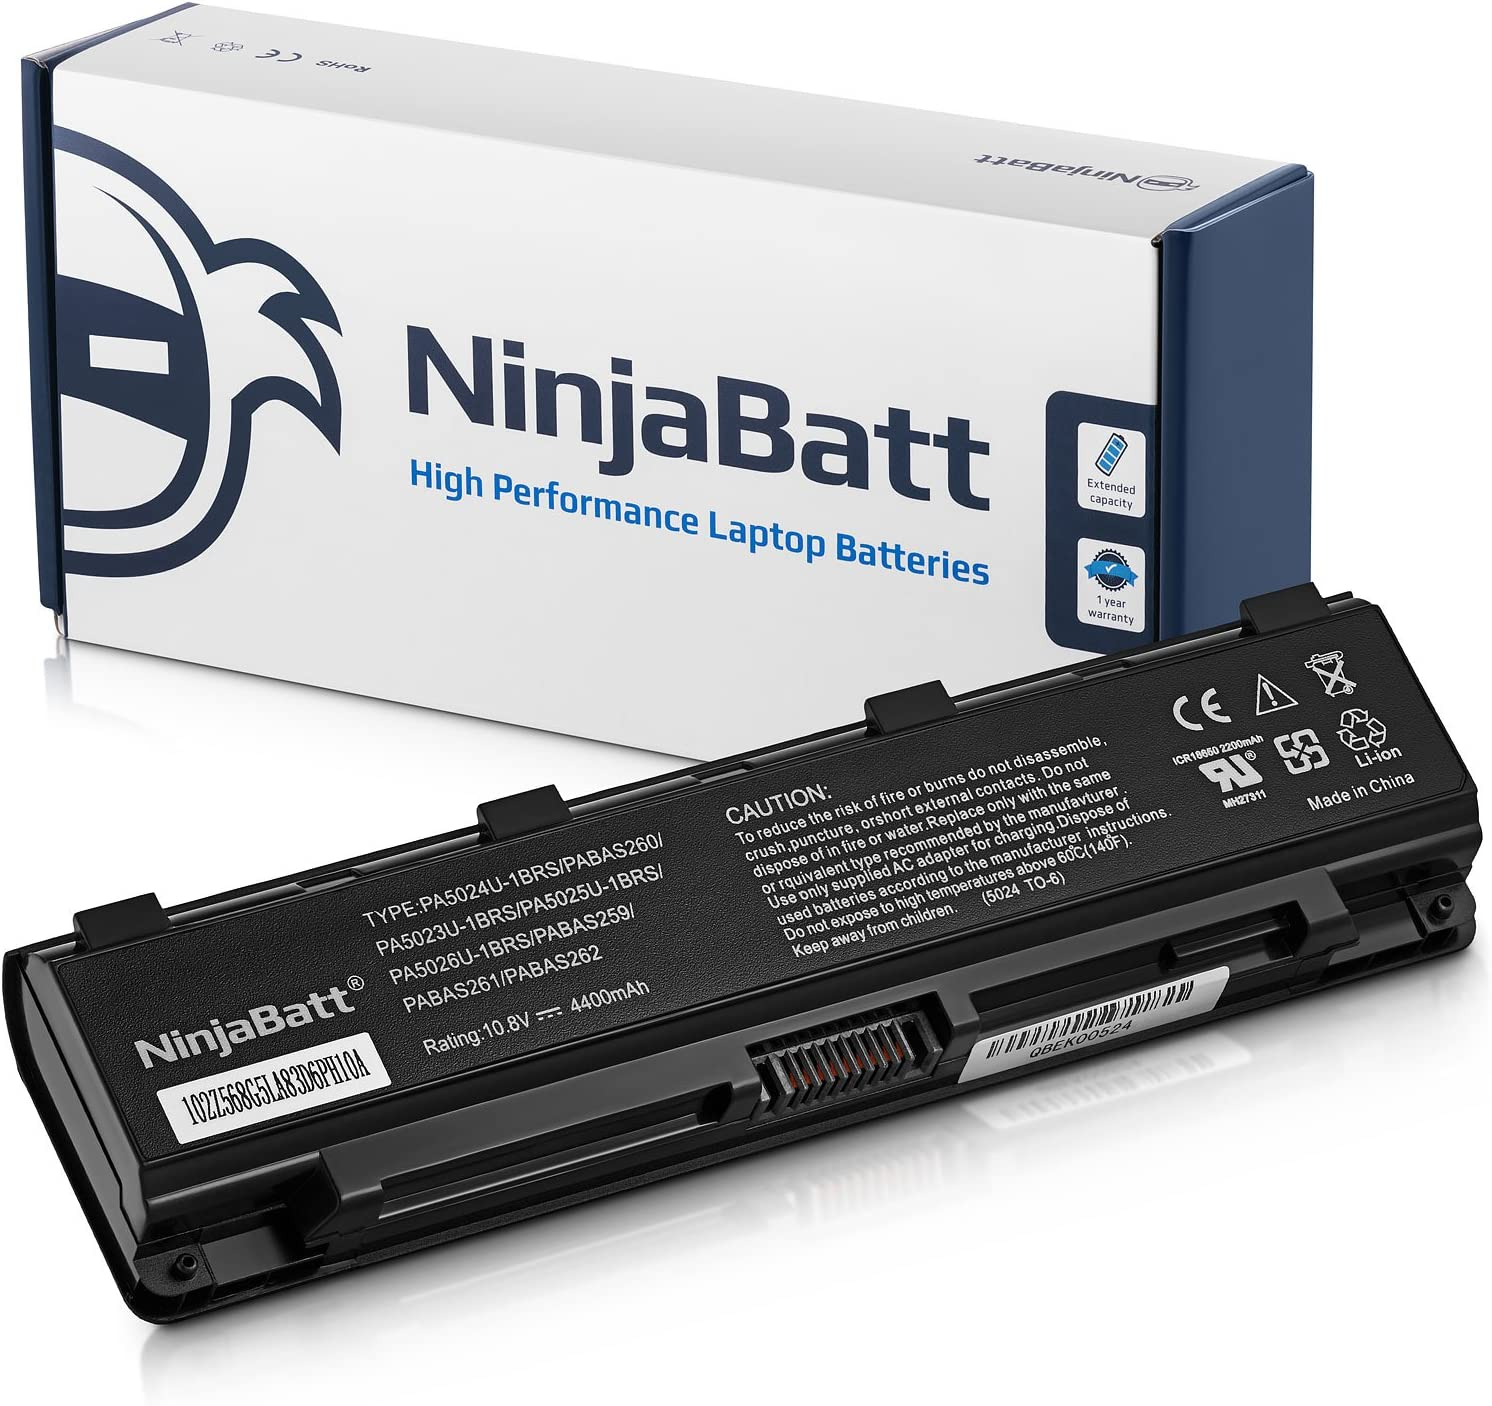 NinjaBatt Laptop Battery for Toshiba PA5024U-1BRS PA5026U-1BRS PA5025U-1BRS PABAS260 PA5023U-1BRS PABAS262 PA5027U-1BRS Satellite C850 C855 L850 P850 PABAS259 - High Performance [6 Cells/4400mAh/48wh]